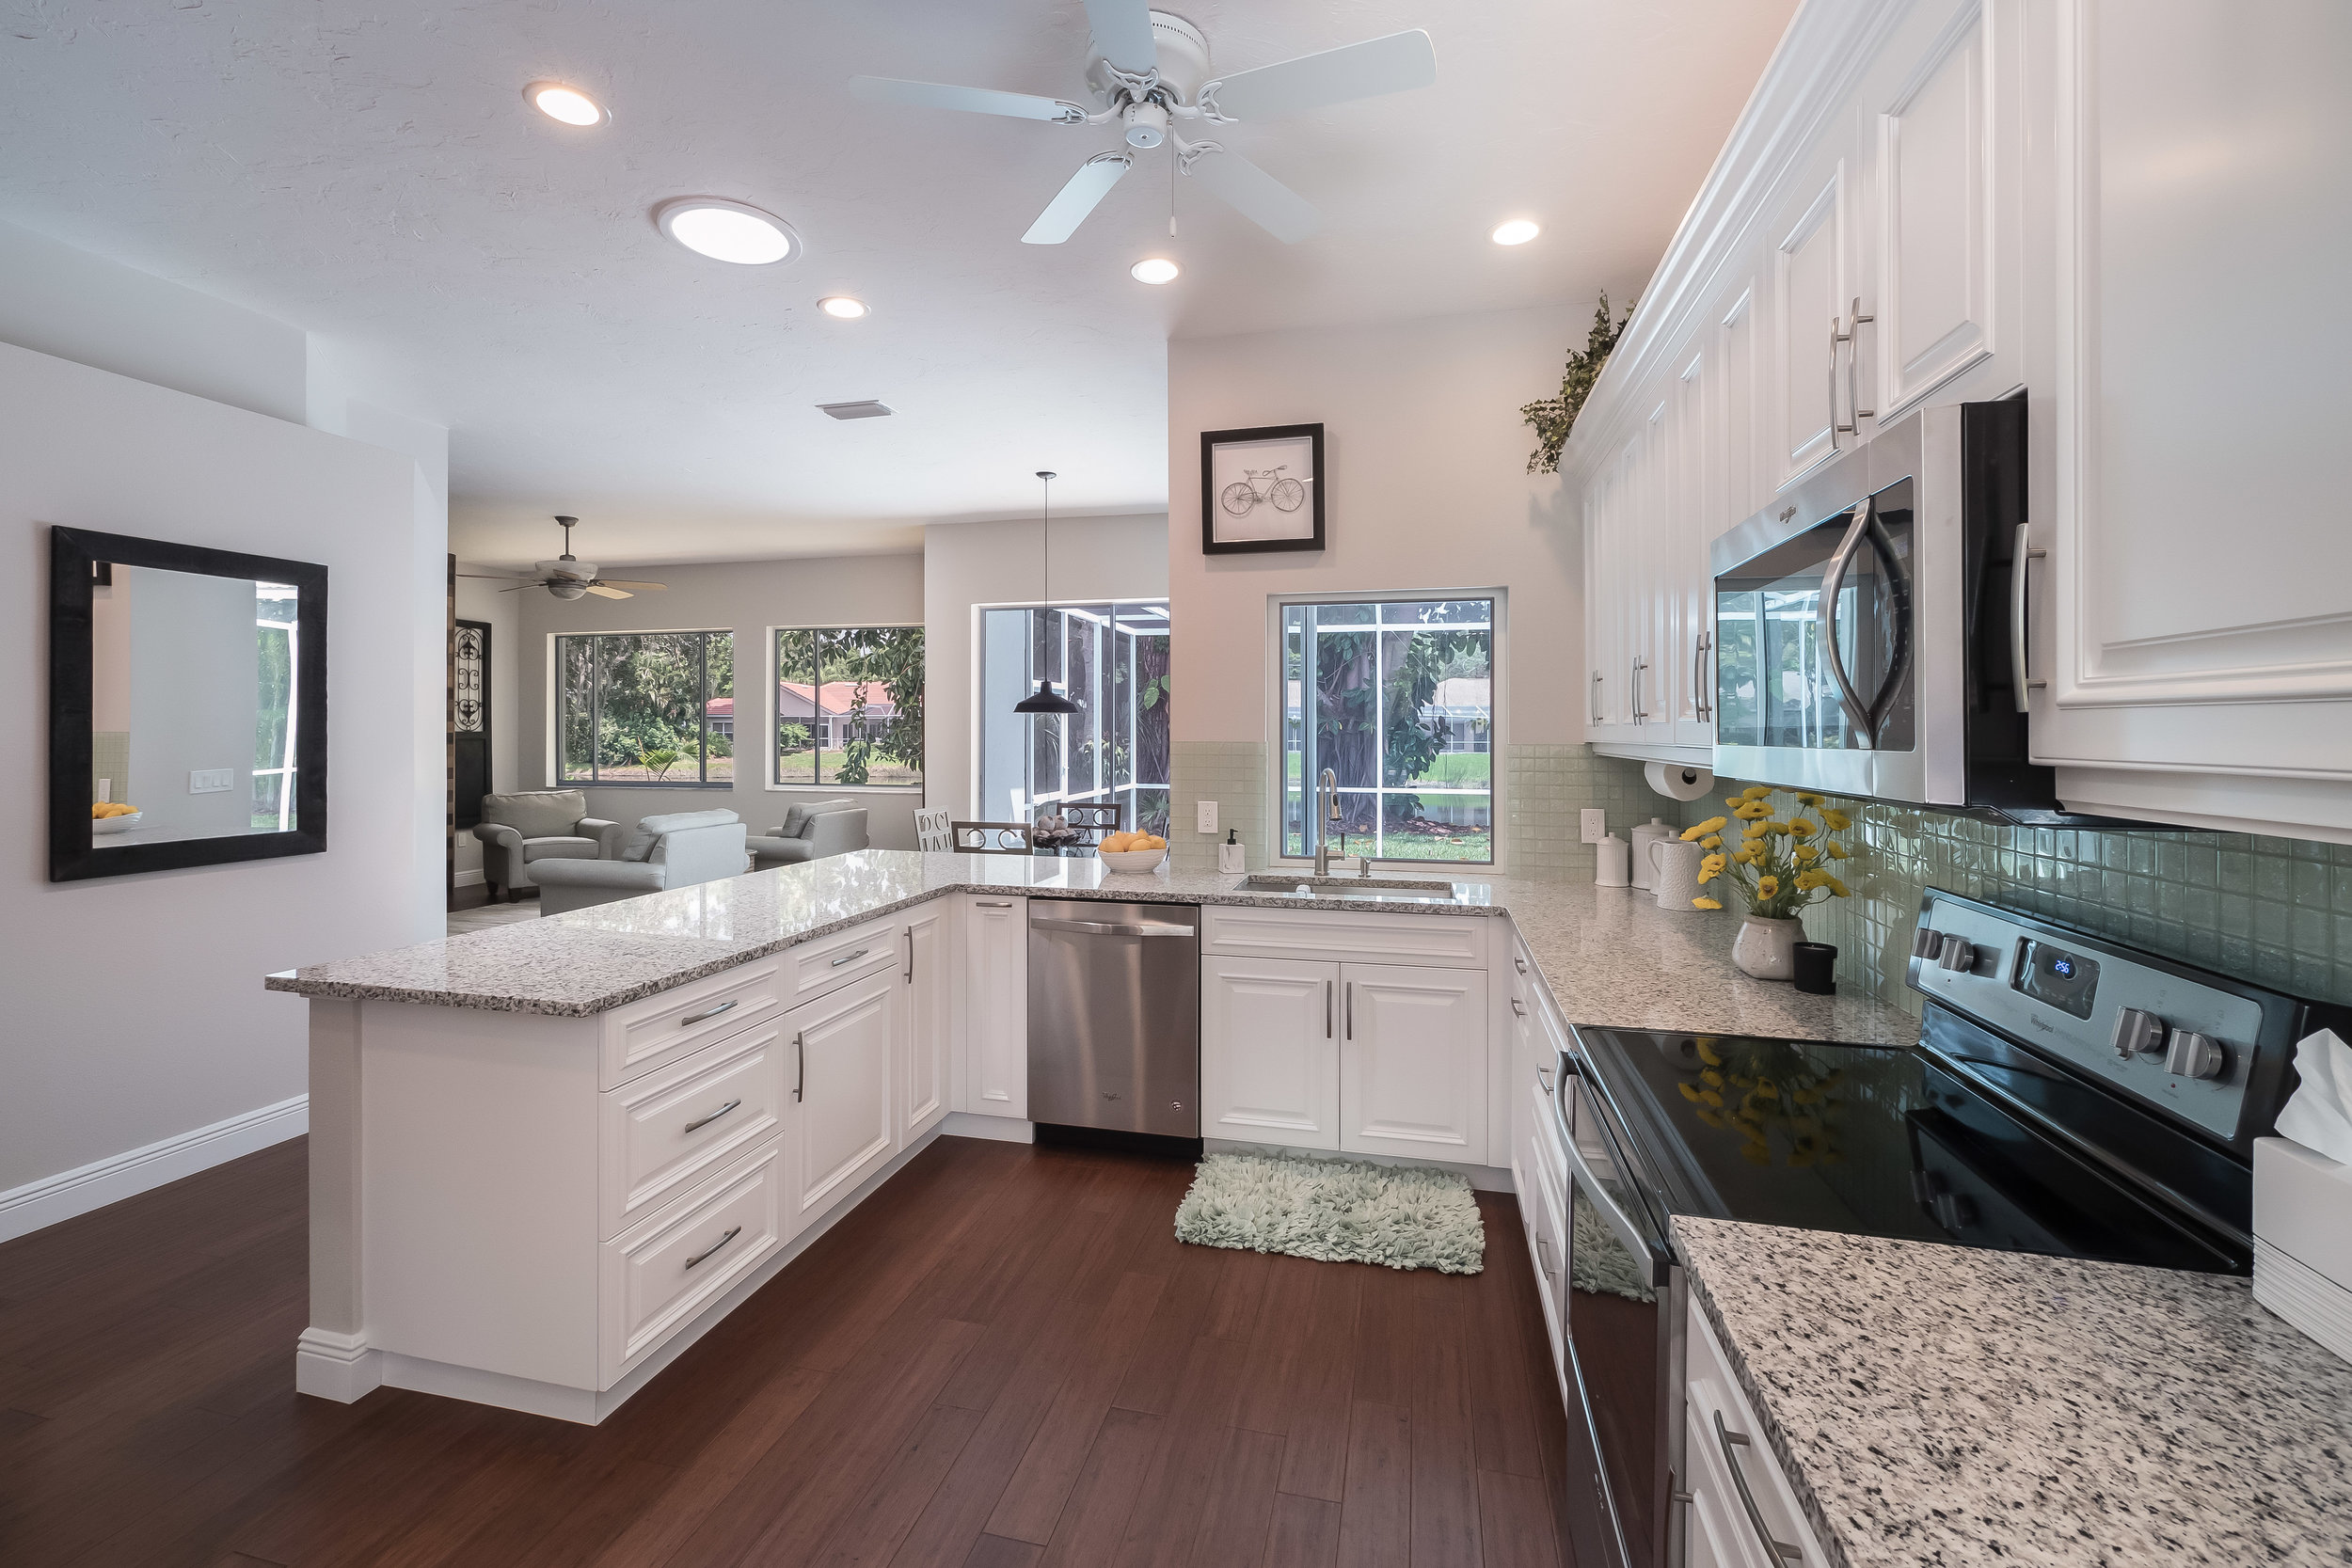 Stunning, brand new kitchen with quiet-close cabinetry, new appliances, and gorgeous granite.